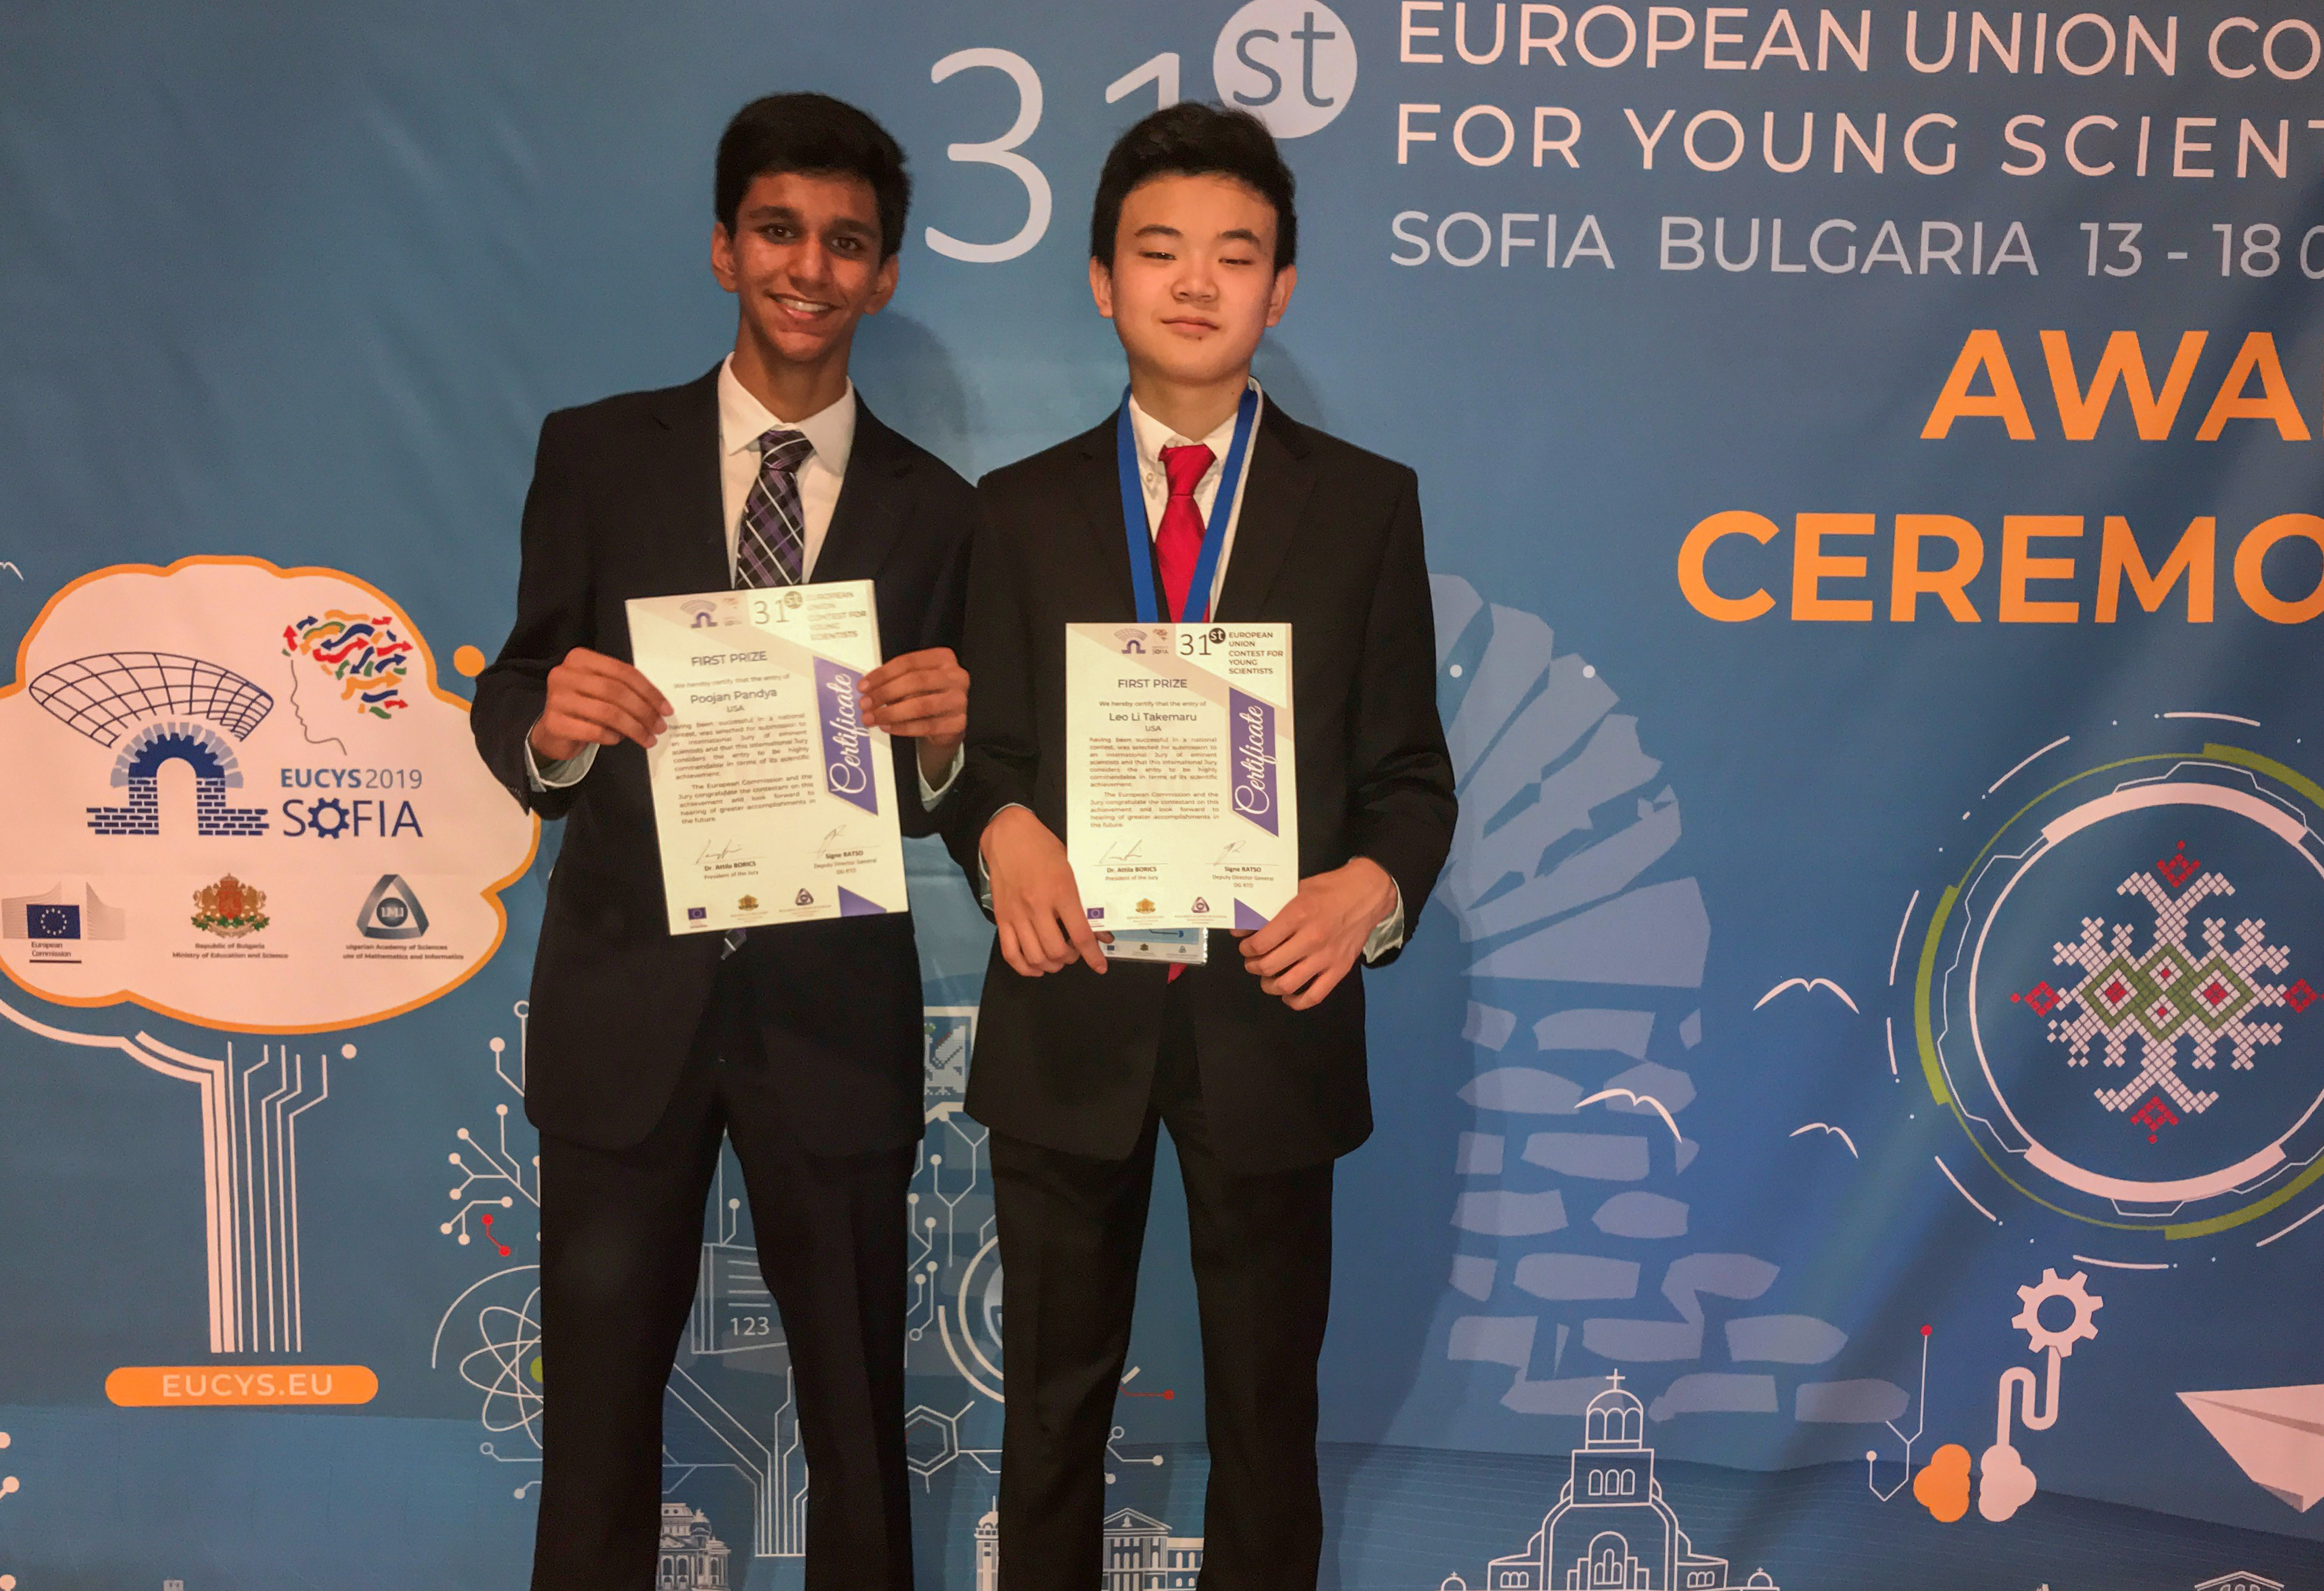 Hills West's Poojan Pandya Takes Top Prize At European Union Contest For Young Scientists